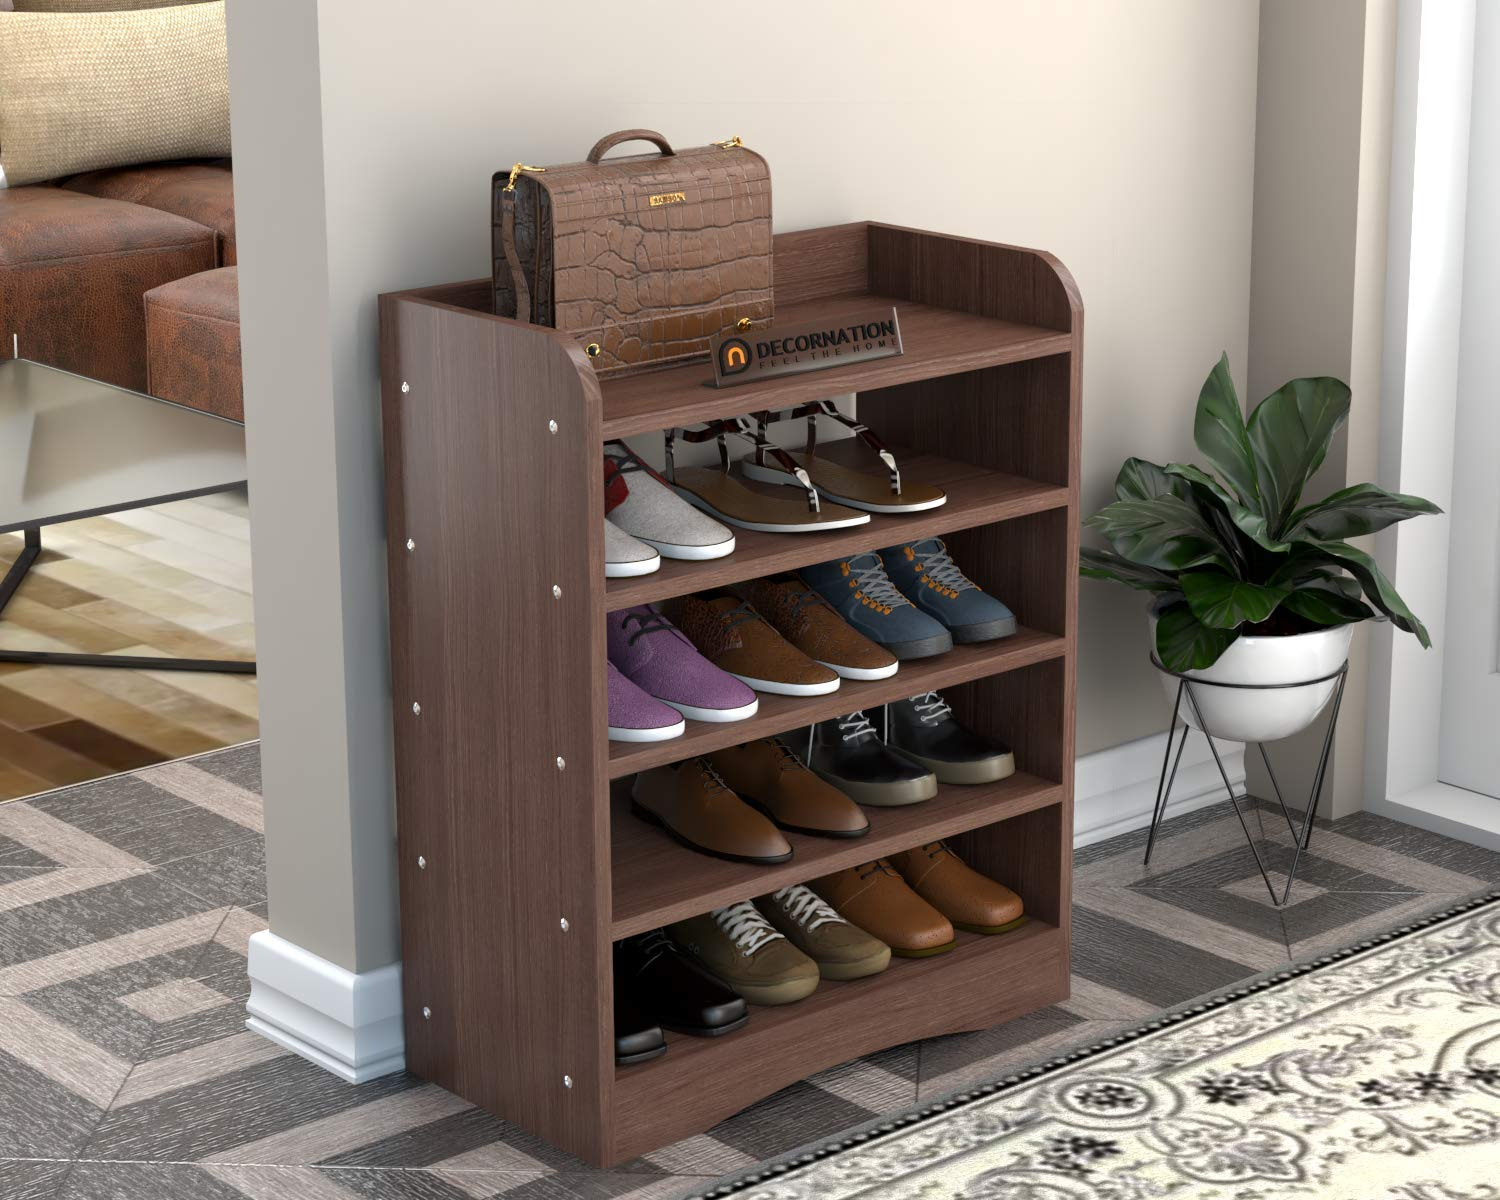 Shoe rack for a garage-A practical addition to your home